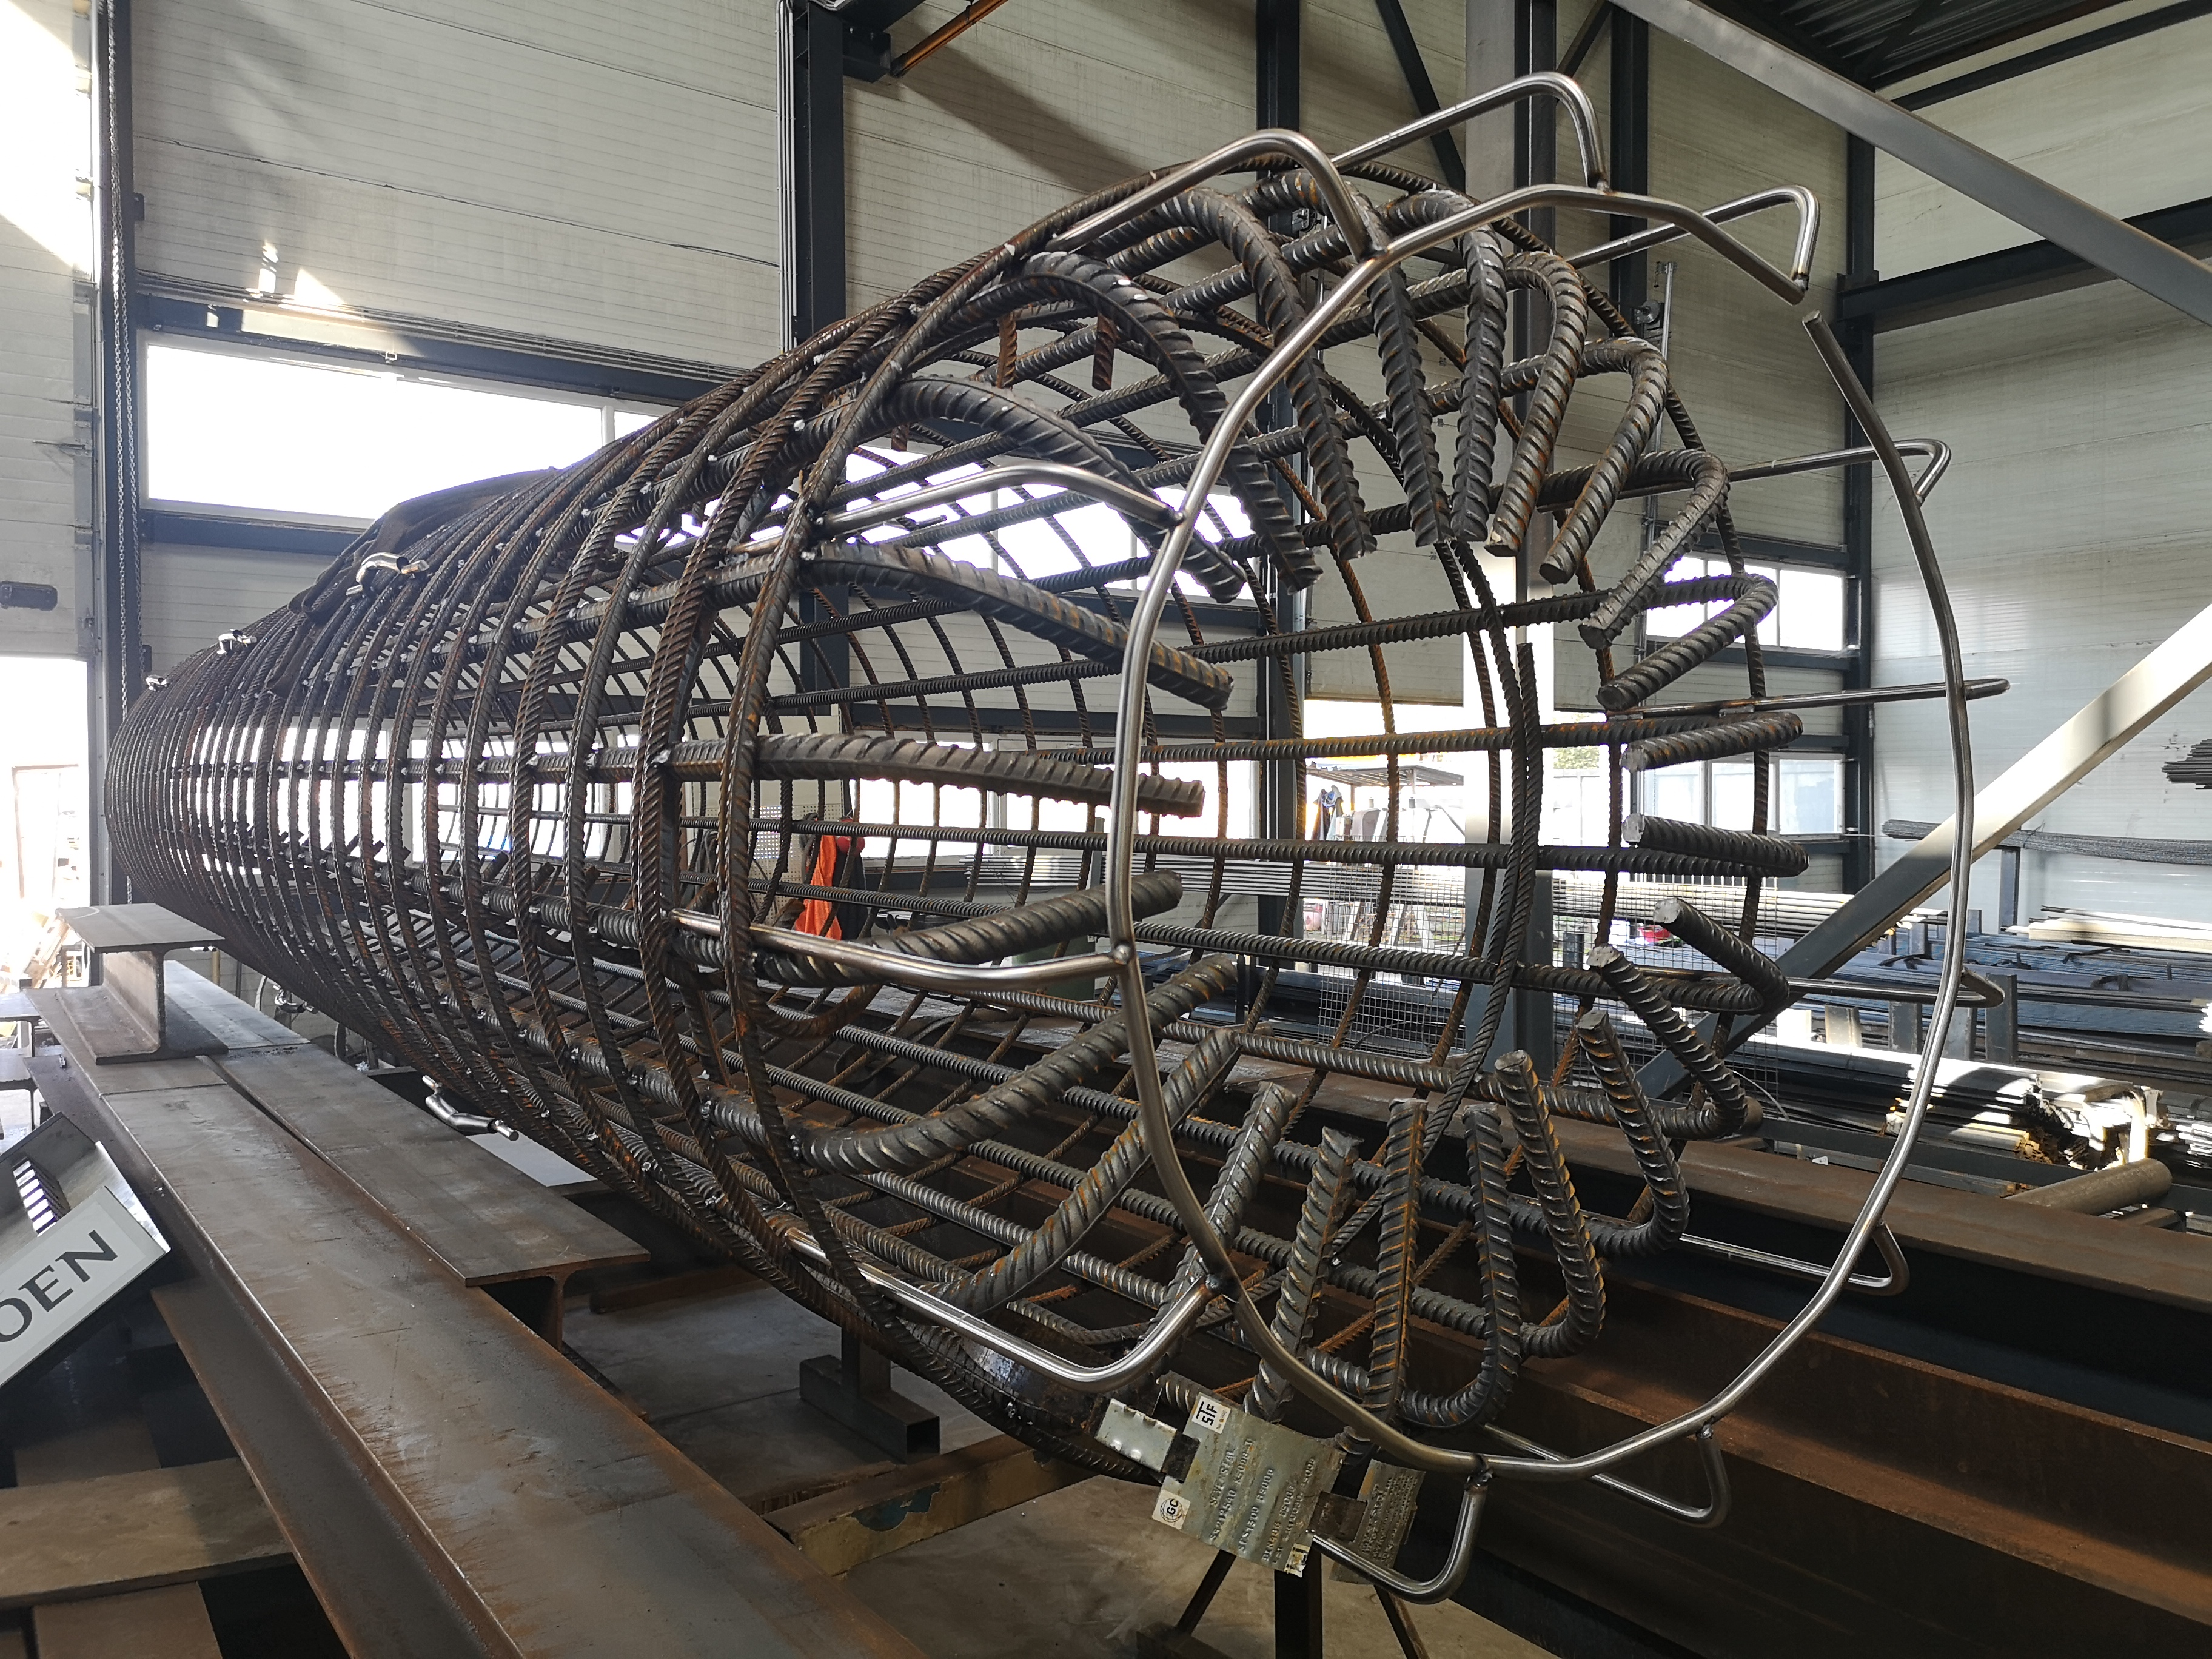 Pile cages